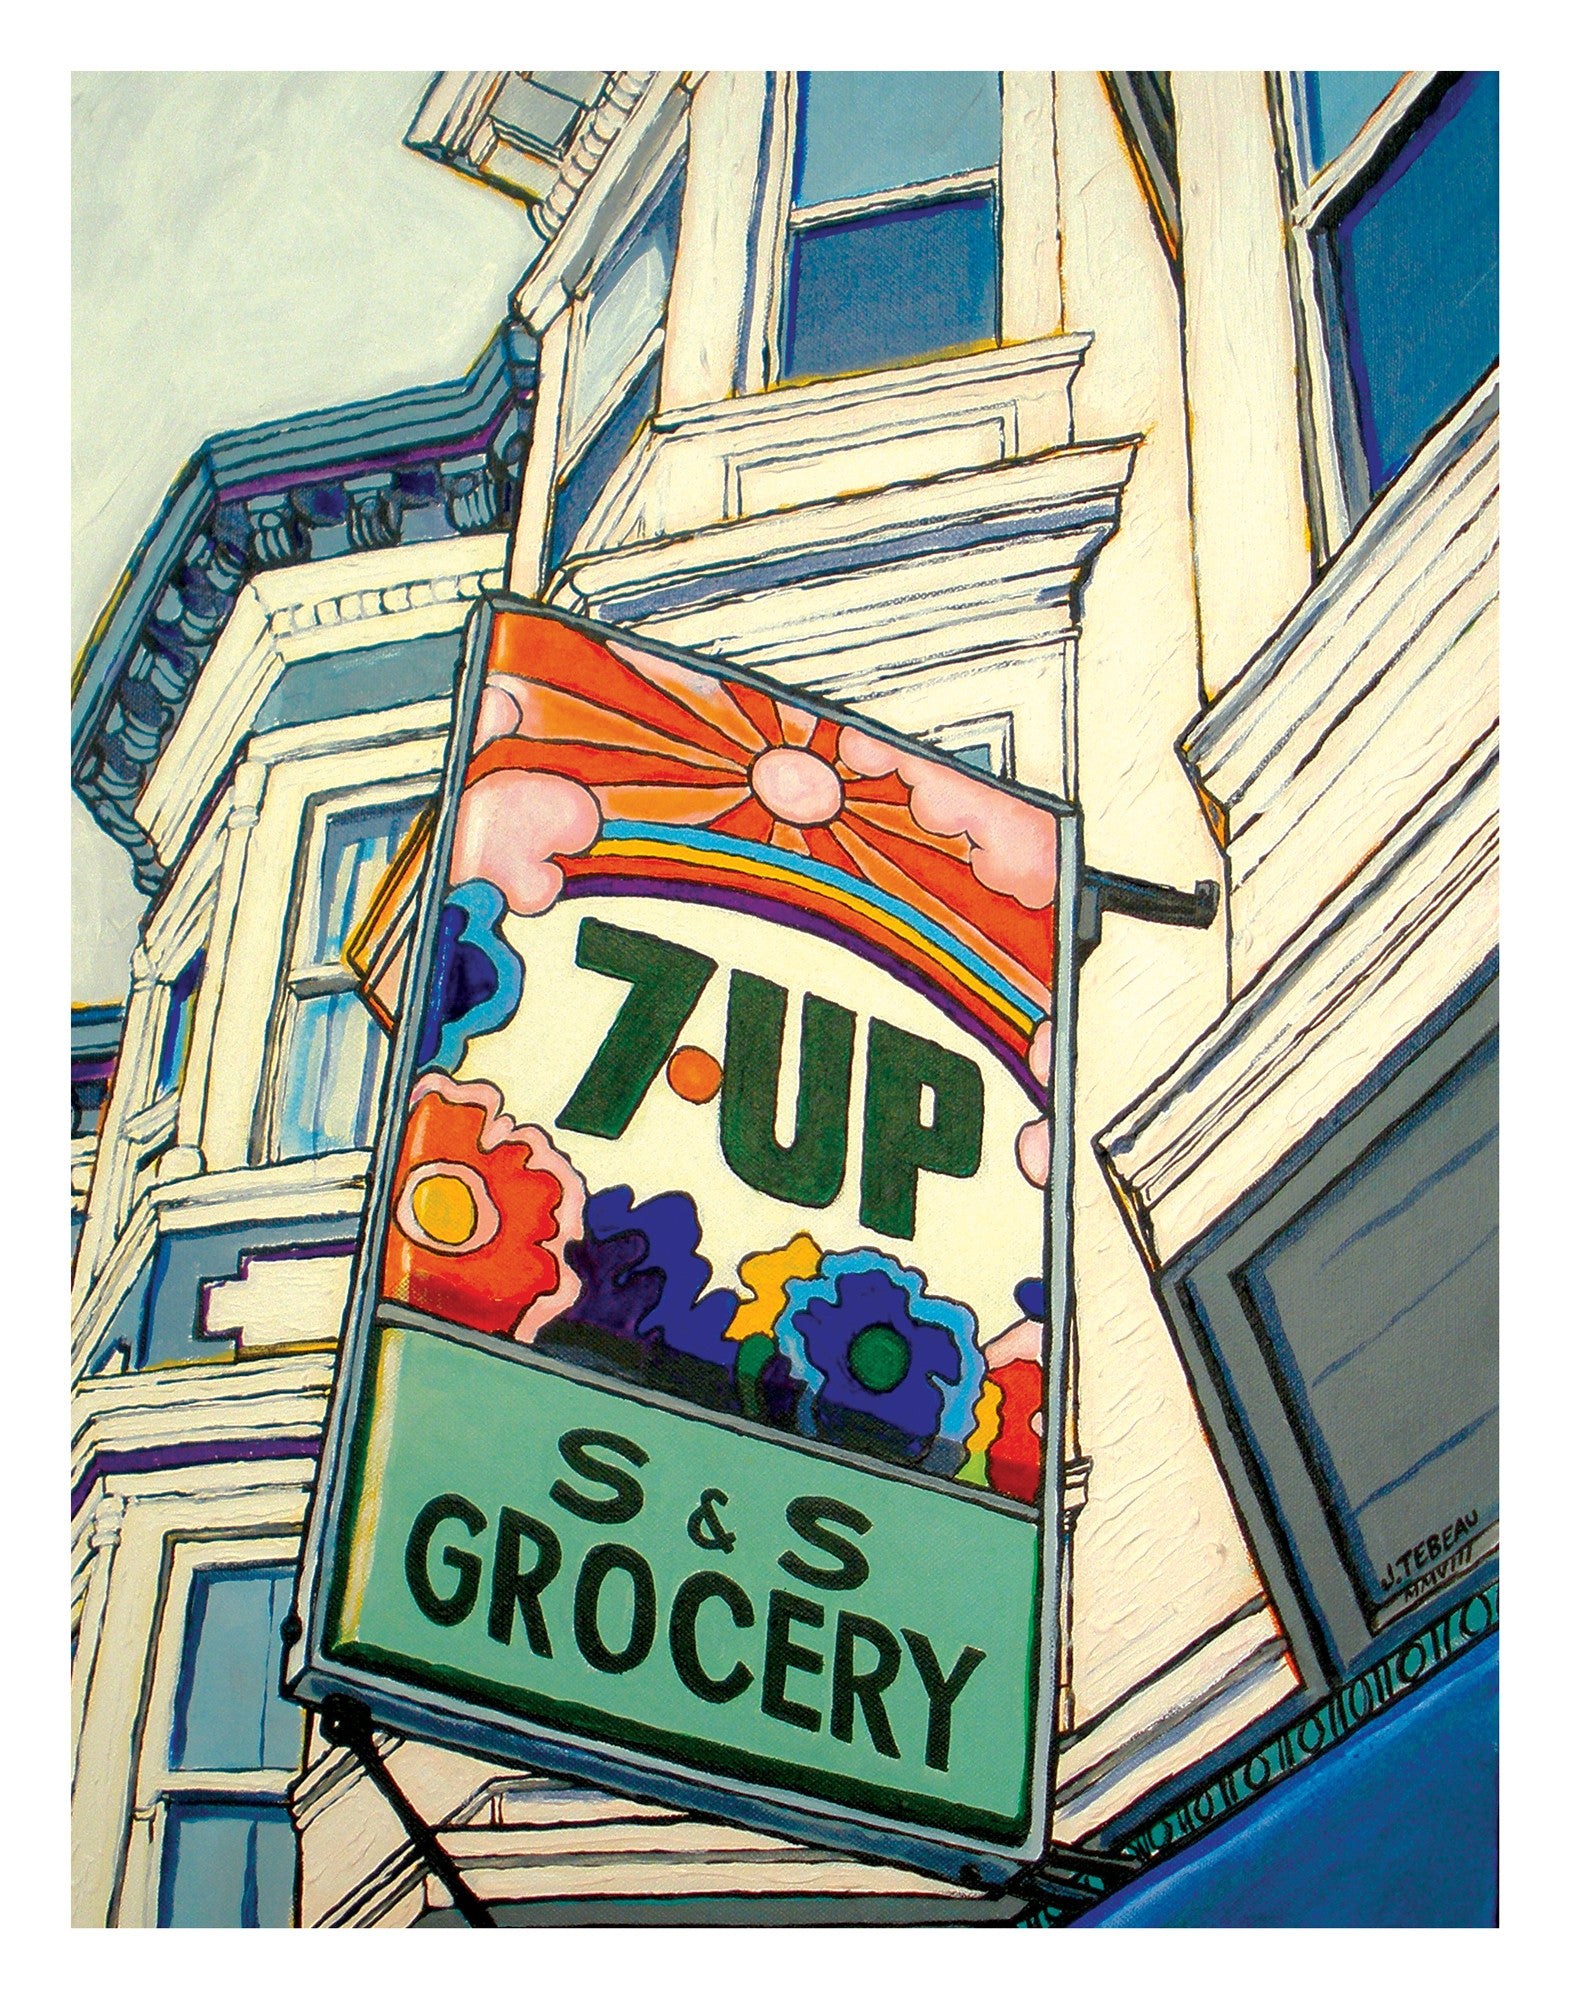 san francisco art old 7up sign by John Tebeau